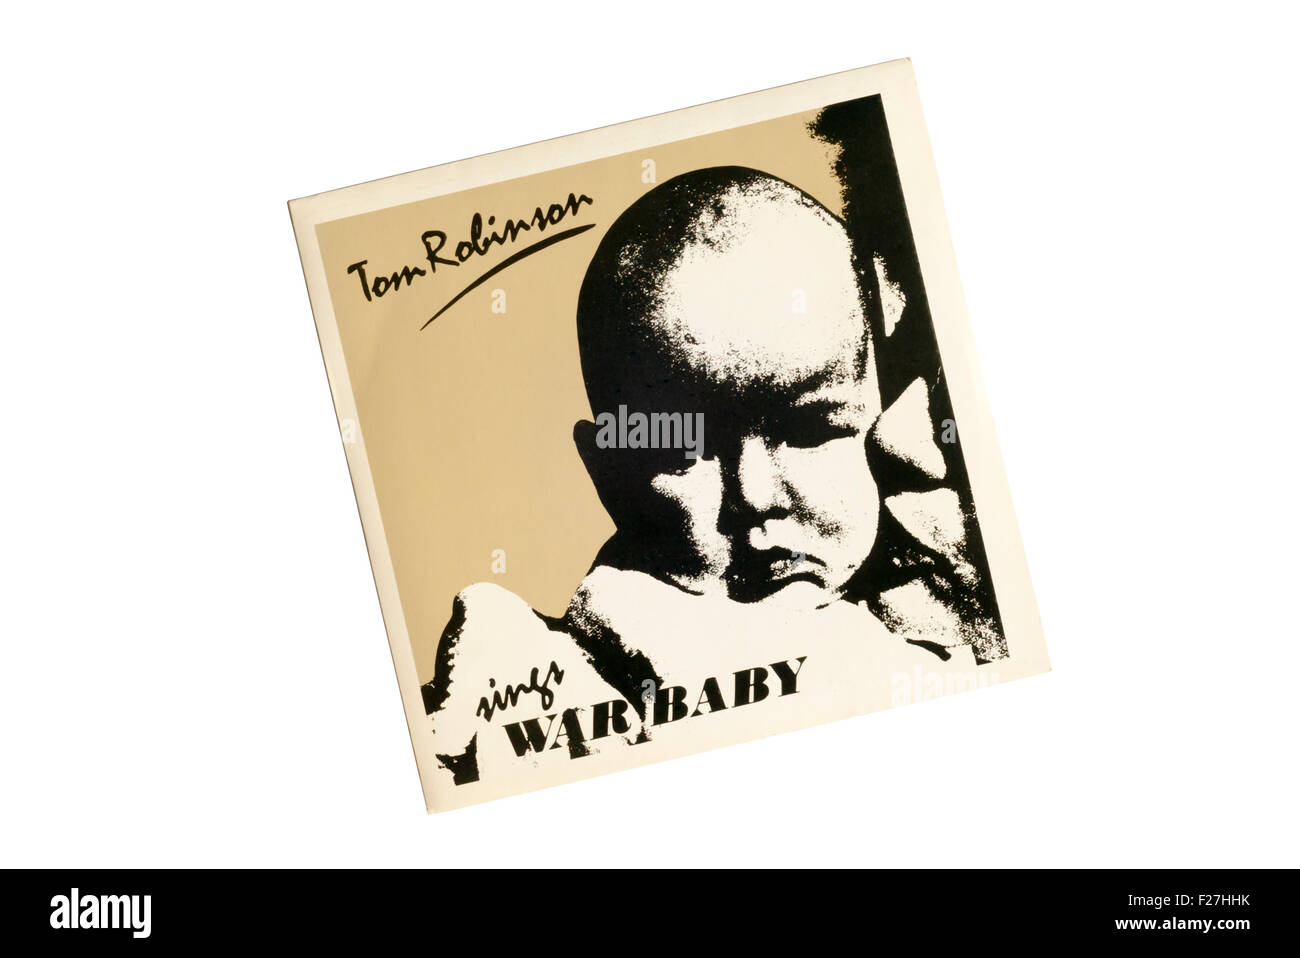 War Baby was issued as a single by Tom Robinson in 1983. - Stock Image